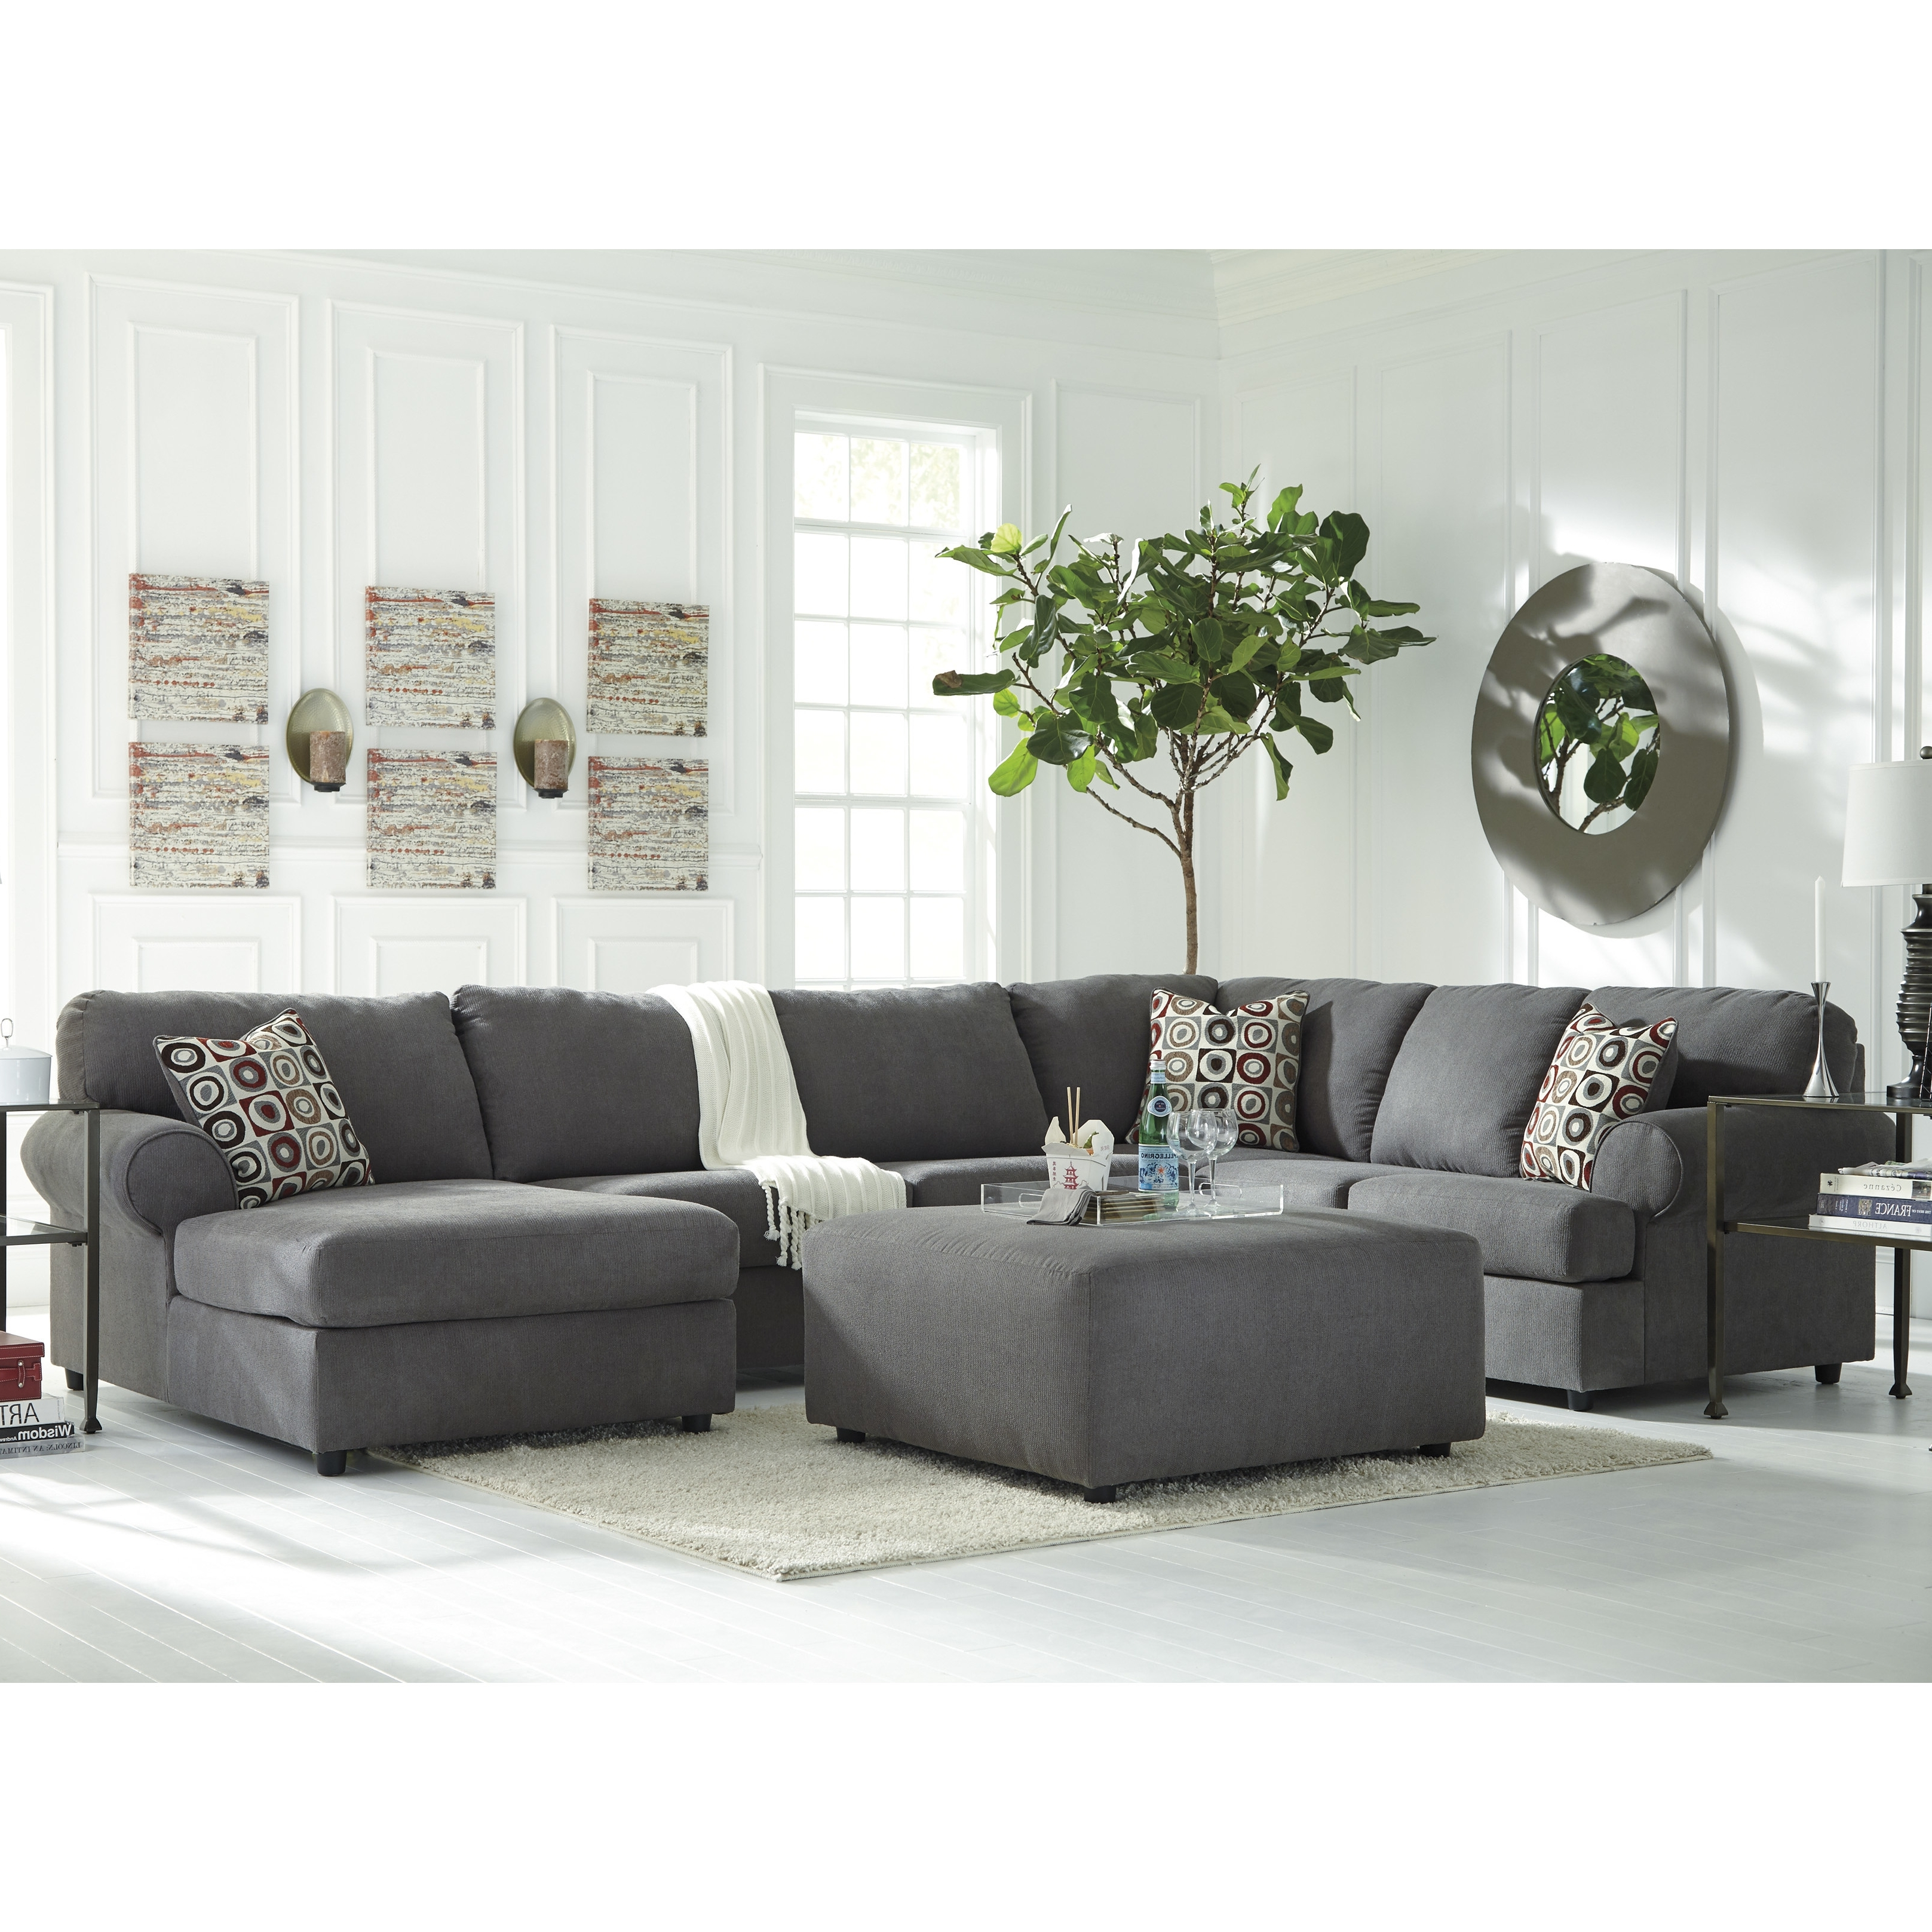 Sellersville Reversible Sectional (View 4 of 15)